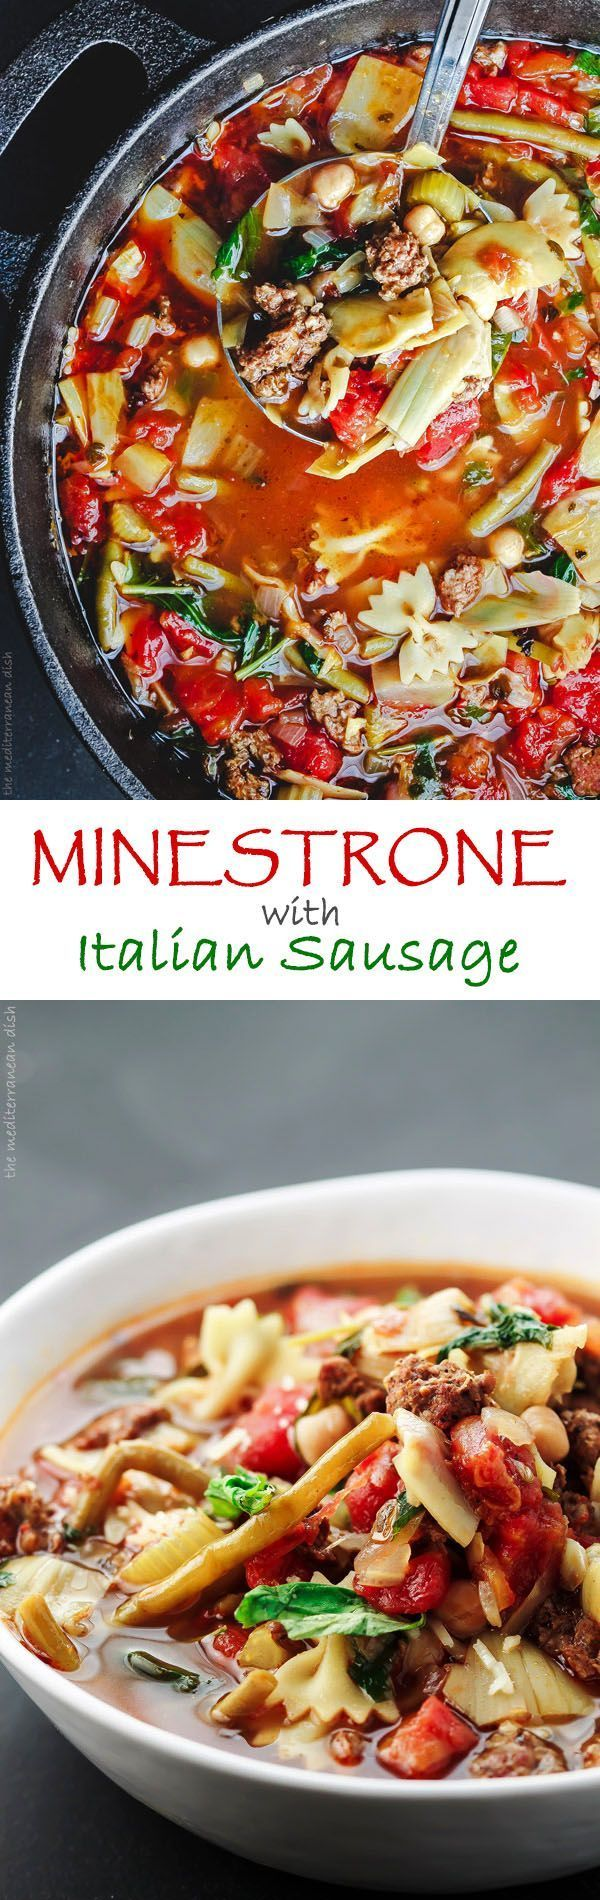 Spicy Italian Sausage Minestrone Recipe. Not all minestrone recipes are created equal! This is a  hearty soup filled with texture and flavor. Made with chickpeas, artichoke hearts, green beans, fresh herbs like parsley and basil, and more.